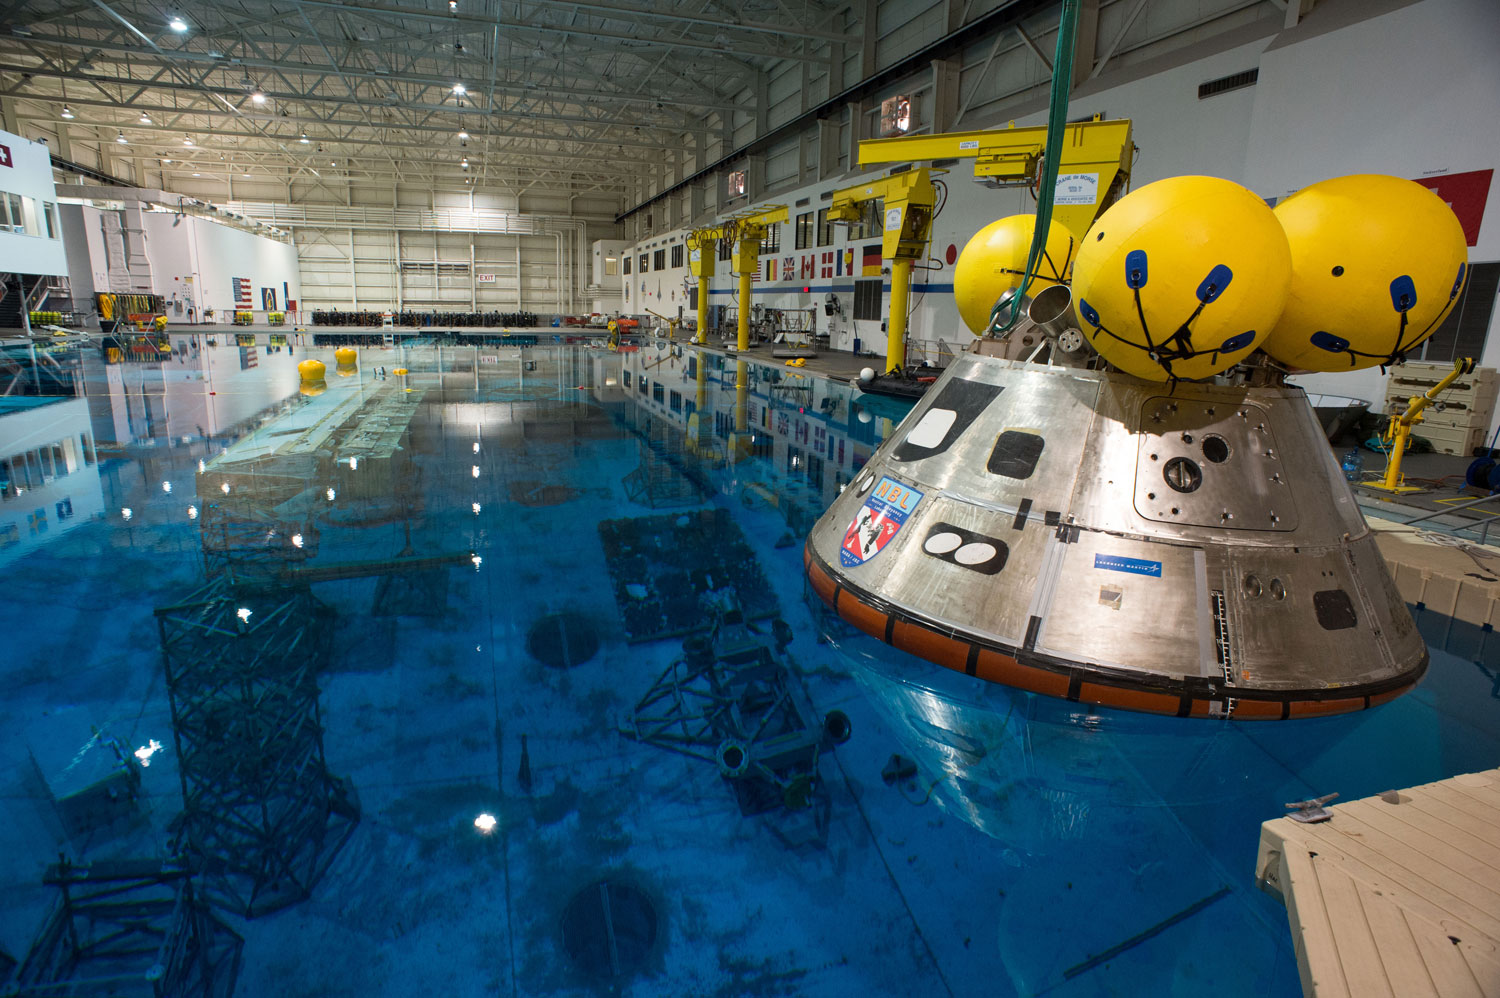 A model of Orion floats above an underwater mockup of the International Space Station in the 40-foot (12 m) deep Neutral Buoyancy Laboratory in Houston on April 25, 2013. The model is used to practice splashdown operations for Orion's first flight test in 2014. The yellow balls on the top of the capsule are flotation balloons which would flip the vehicle into the proper orientation if it were to turn upside down after landing.